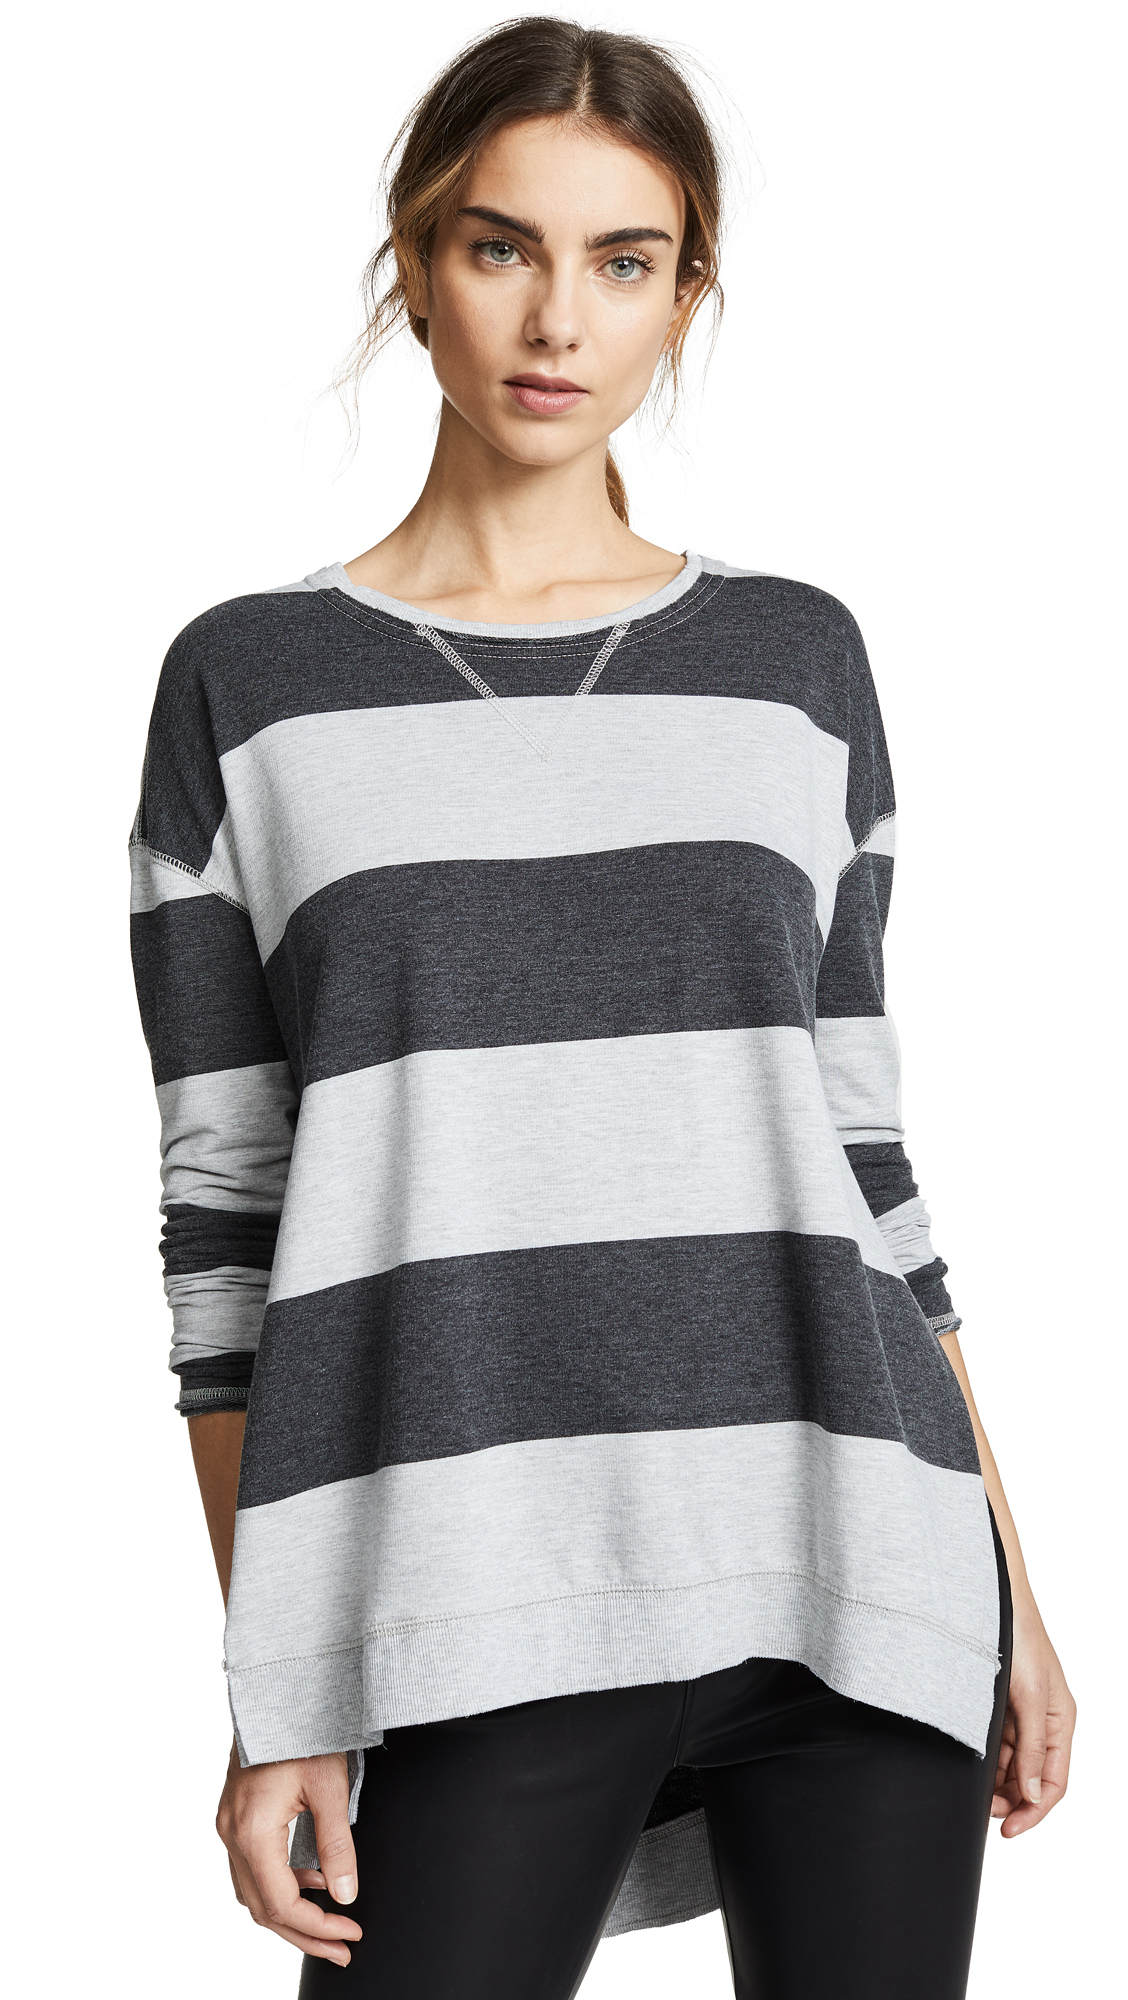 Z SUPPLY The Rugby Stripe Weekender Pullover in Black